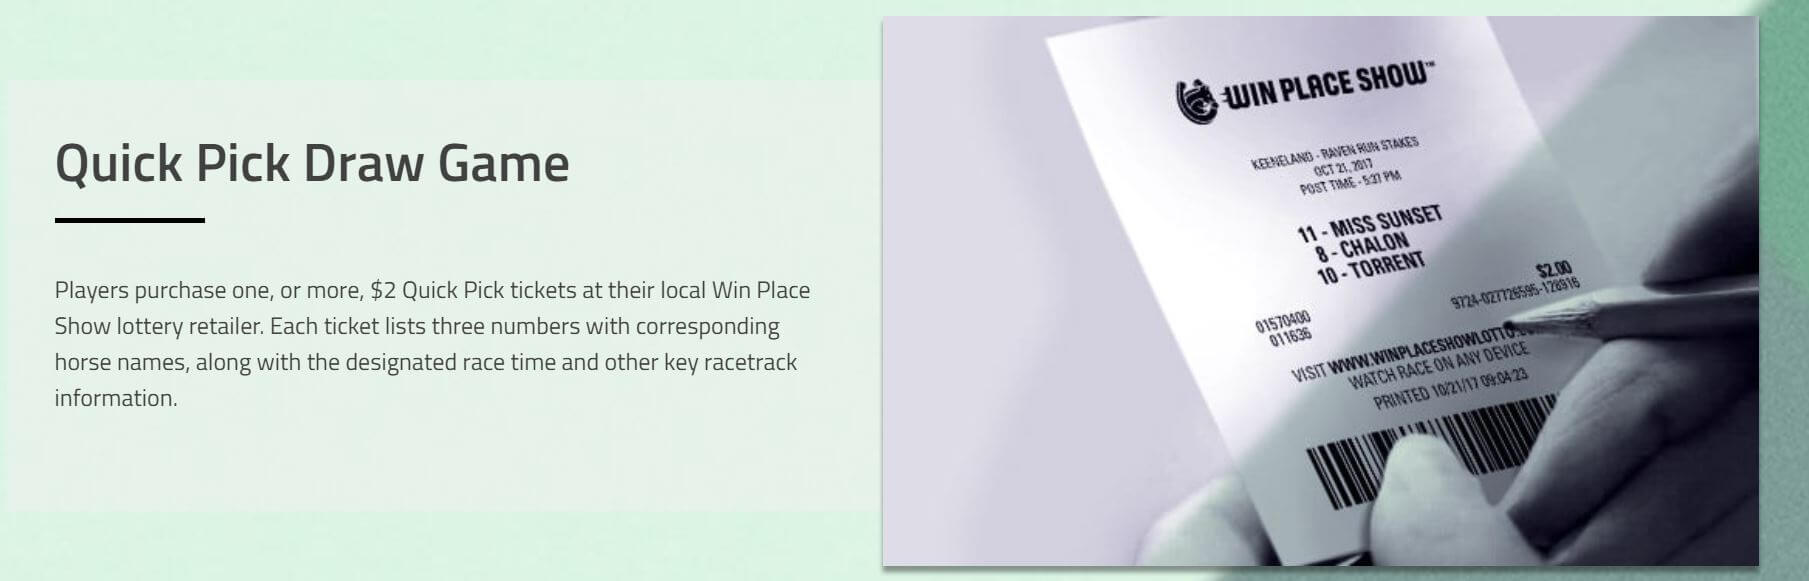 Win Place Show Bet Calculator